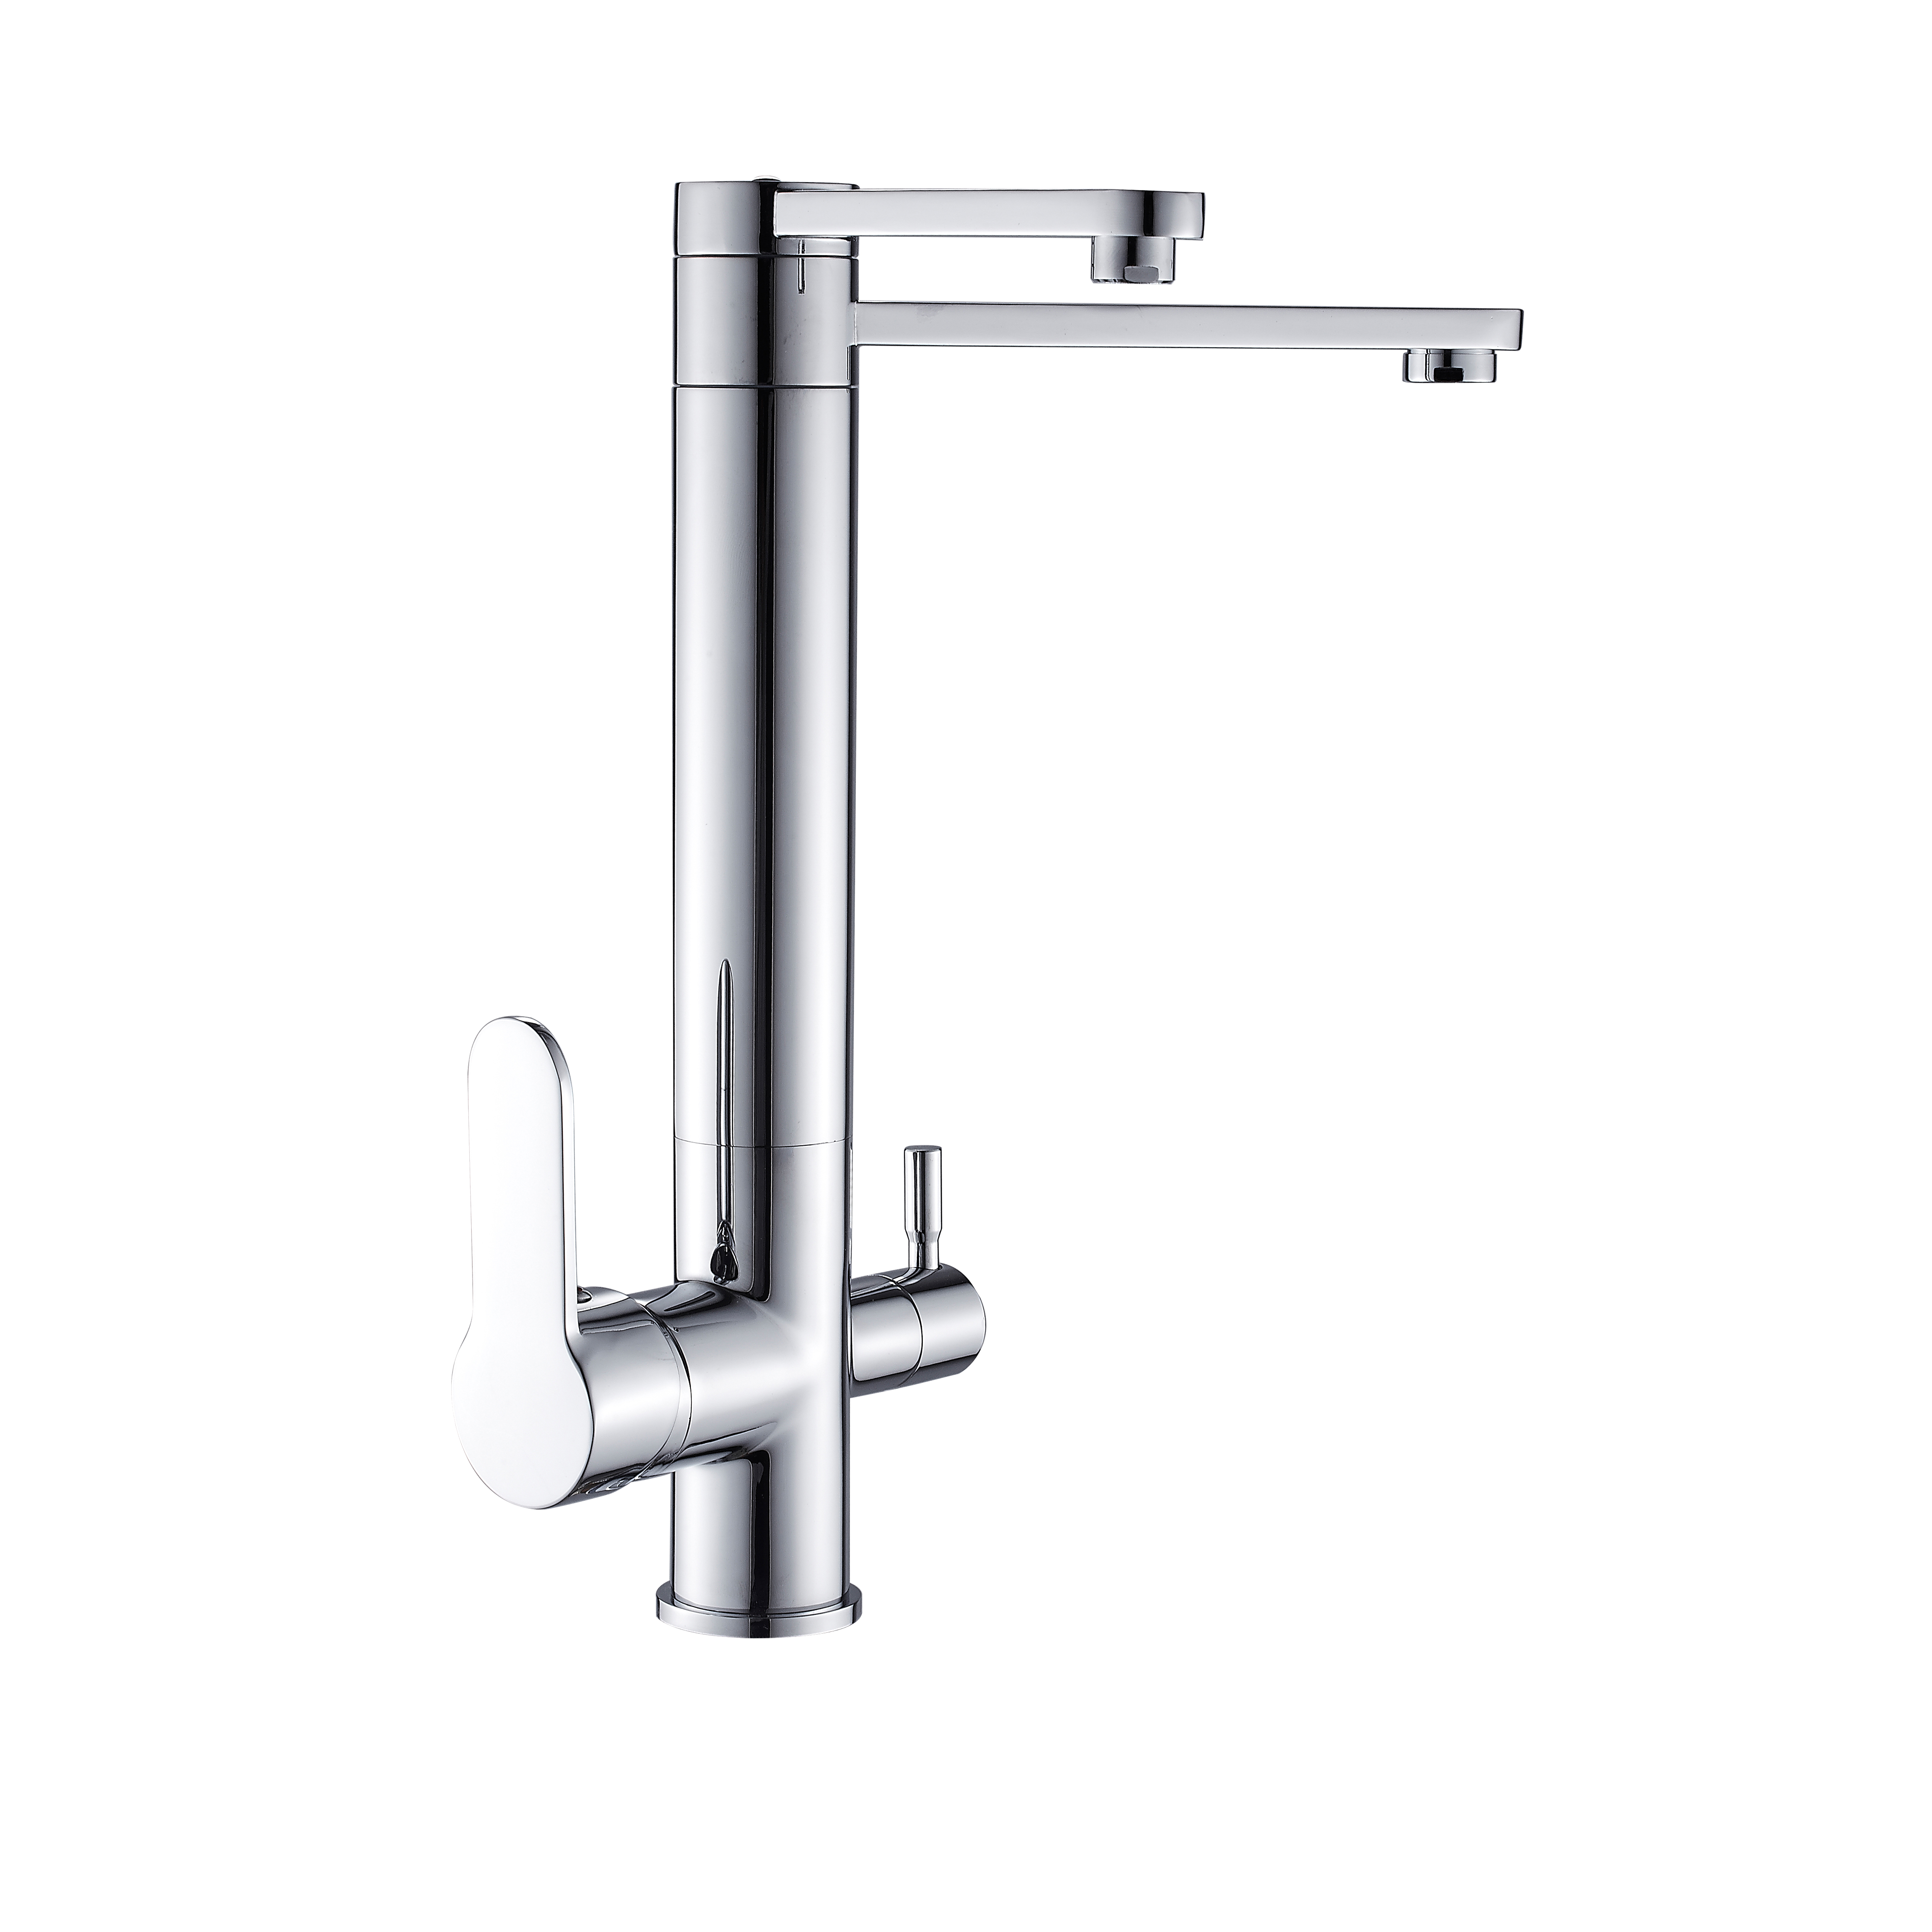 FLG chrome brass double outlets kitchen faucets